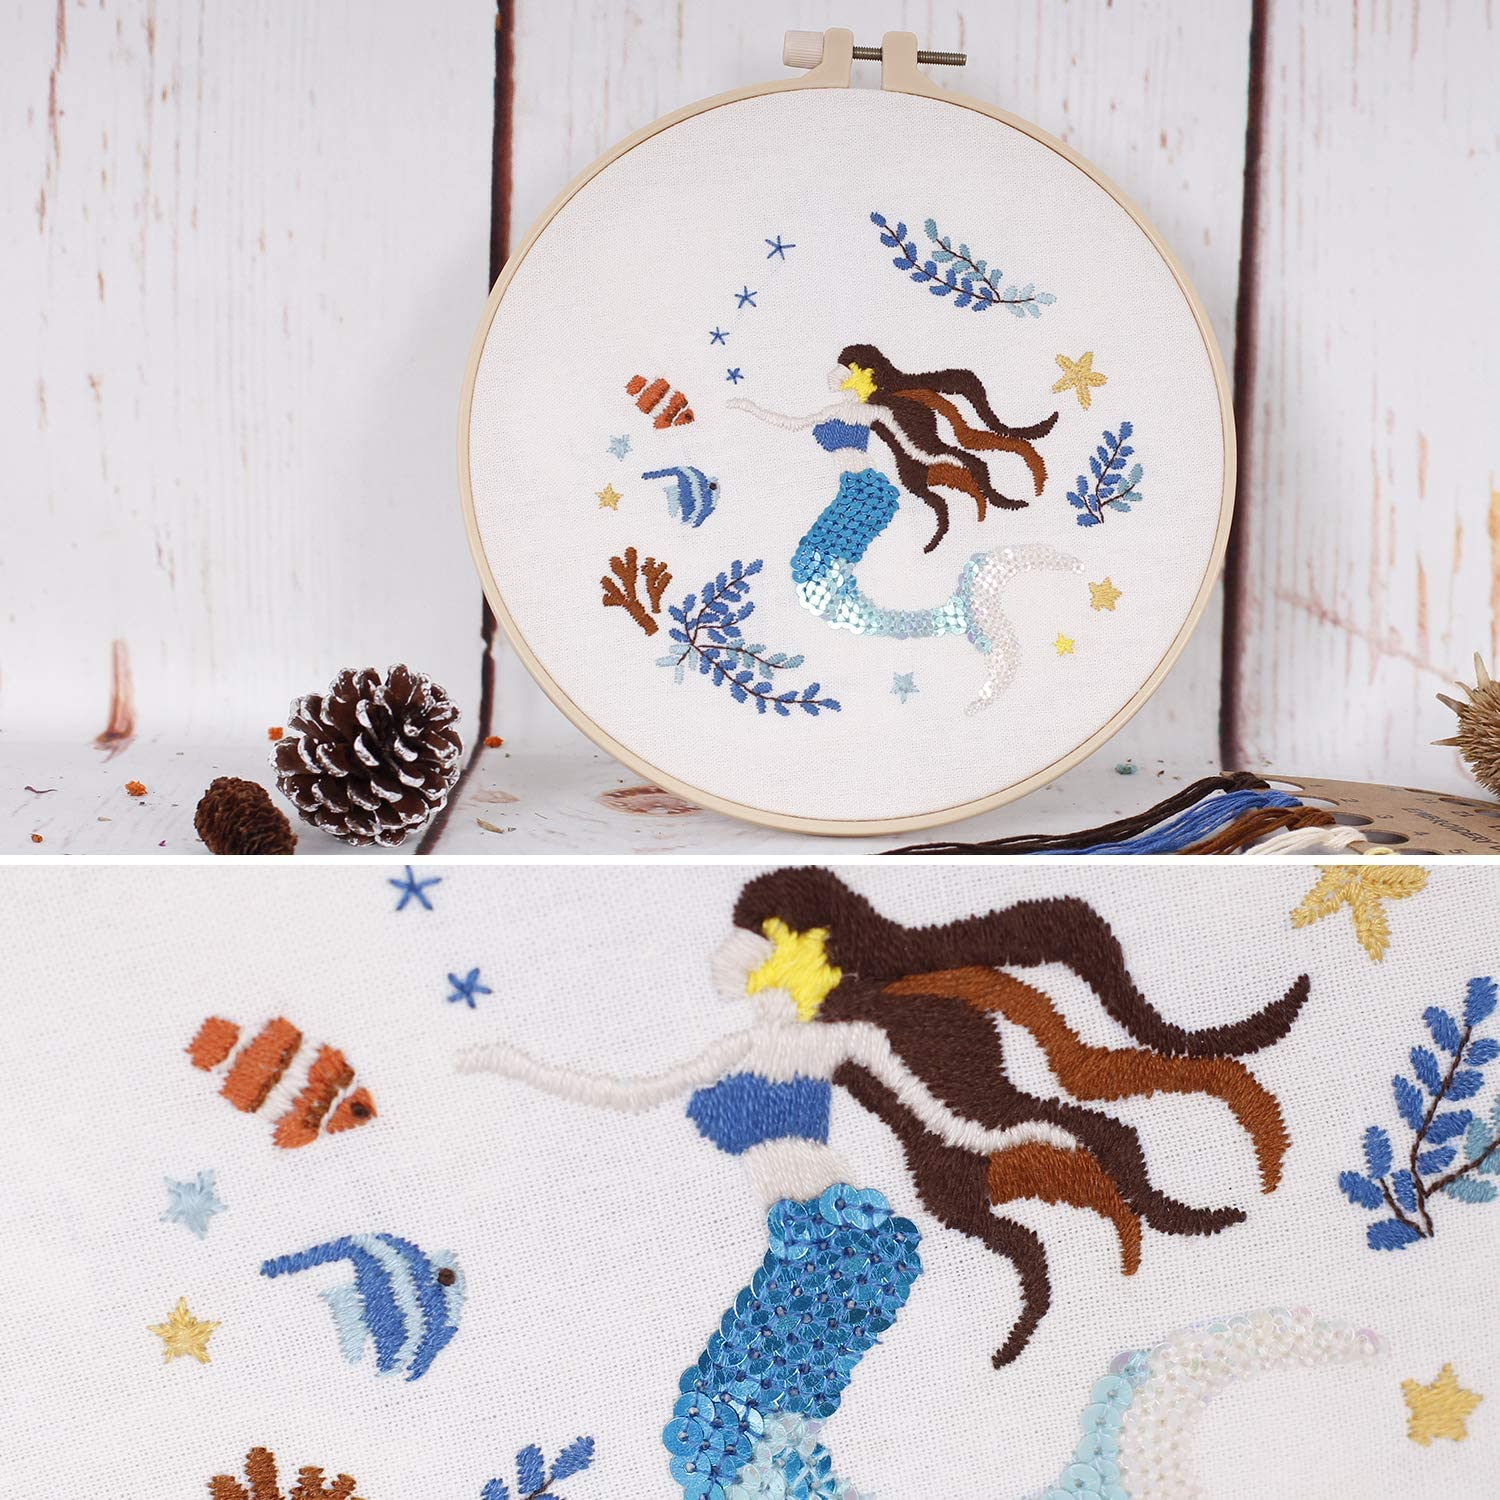 17 Impeccable Hand Embroidery Designs | Sewing Tips, Ideas, And Guide